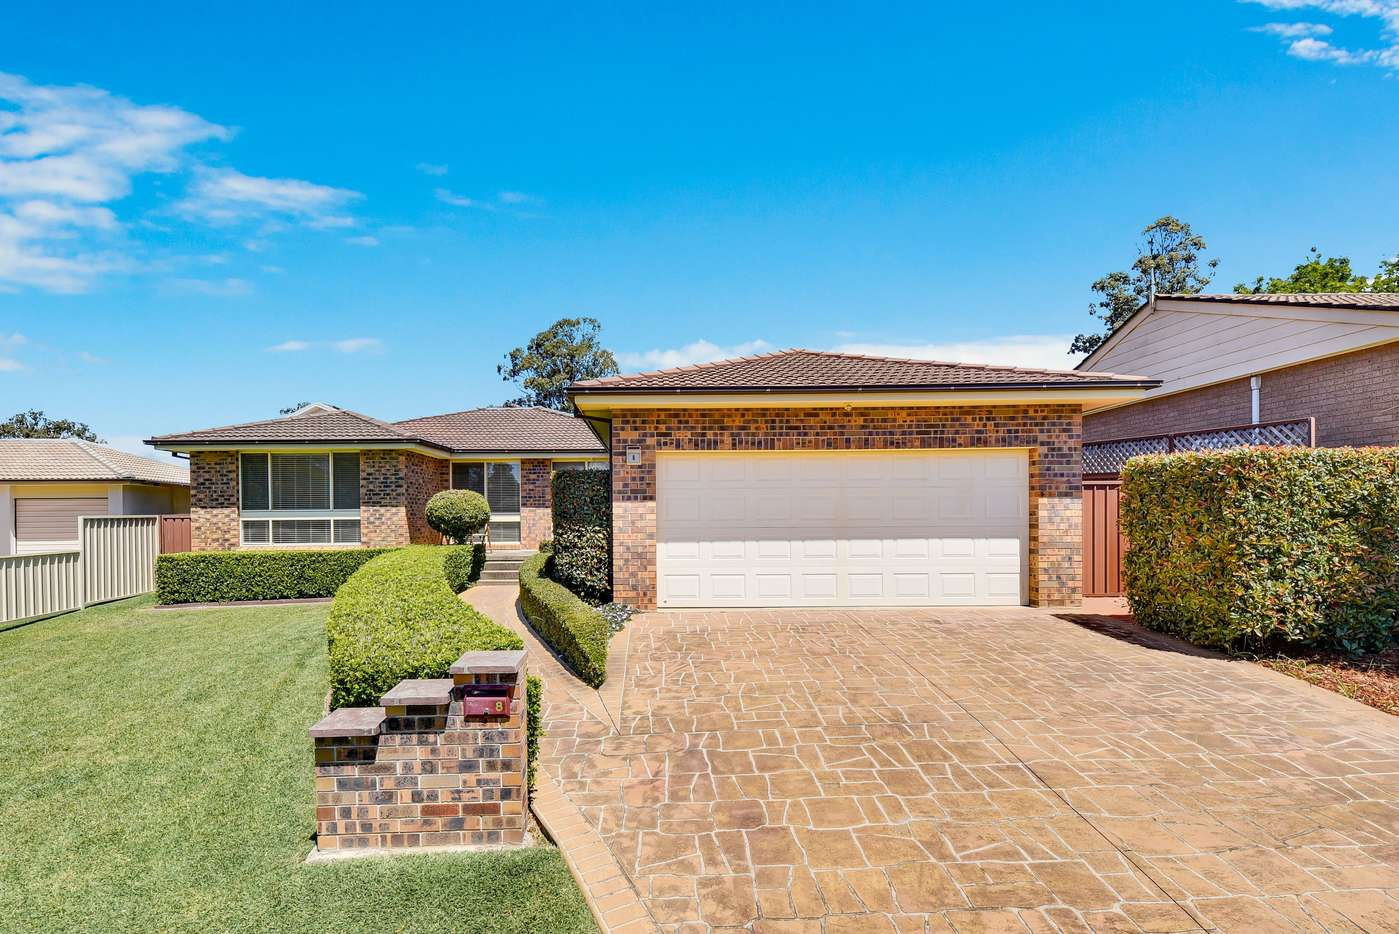 Main view of Homely house listing, 8 Jowett Place, Ingleburn, NSW 2565